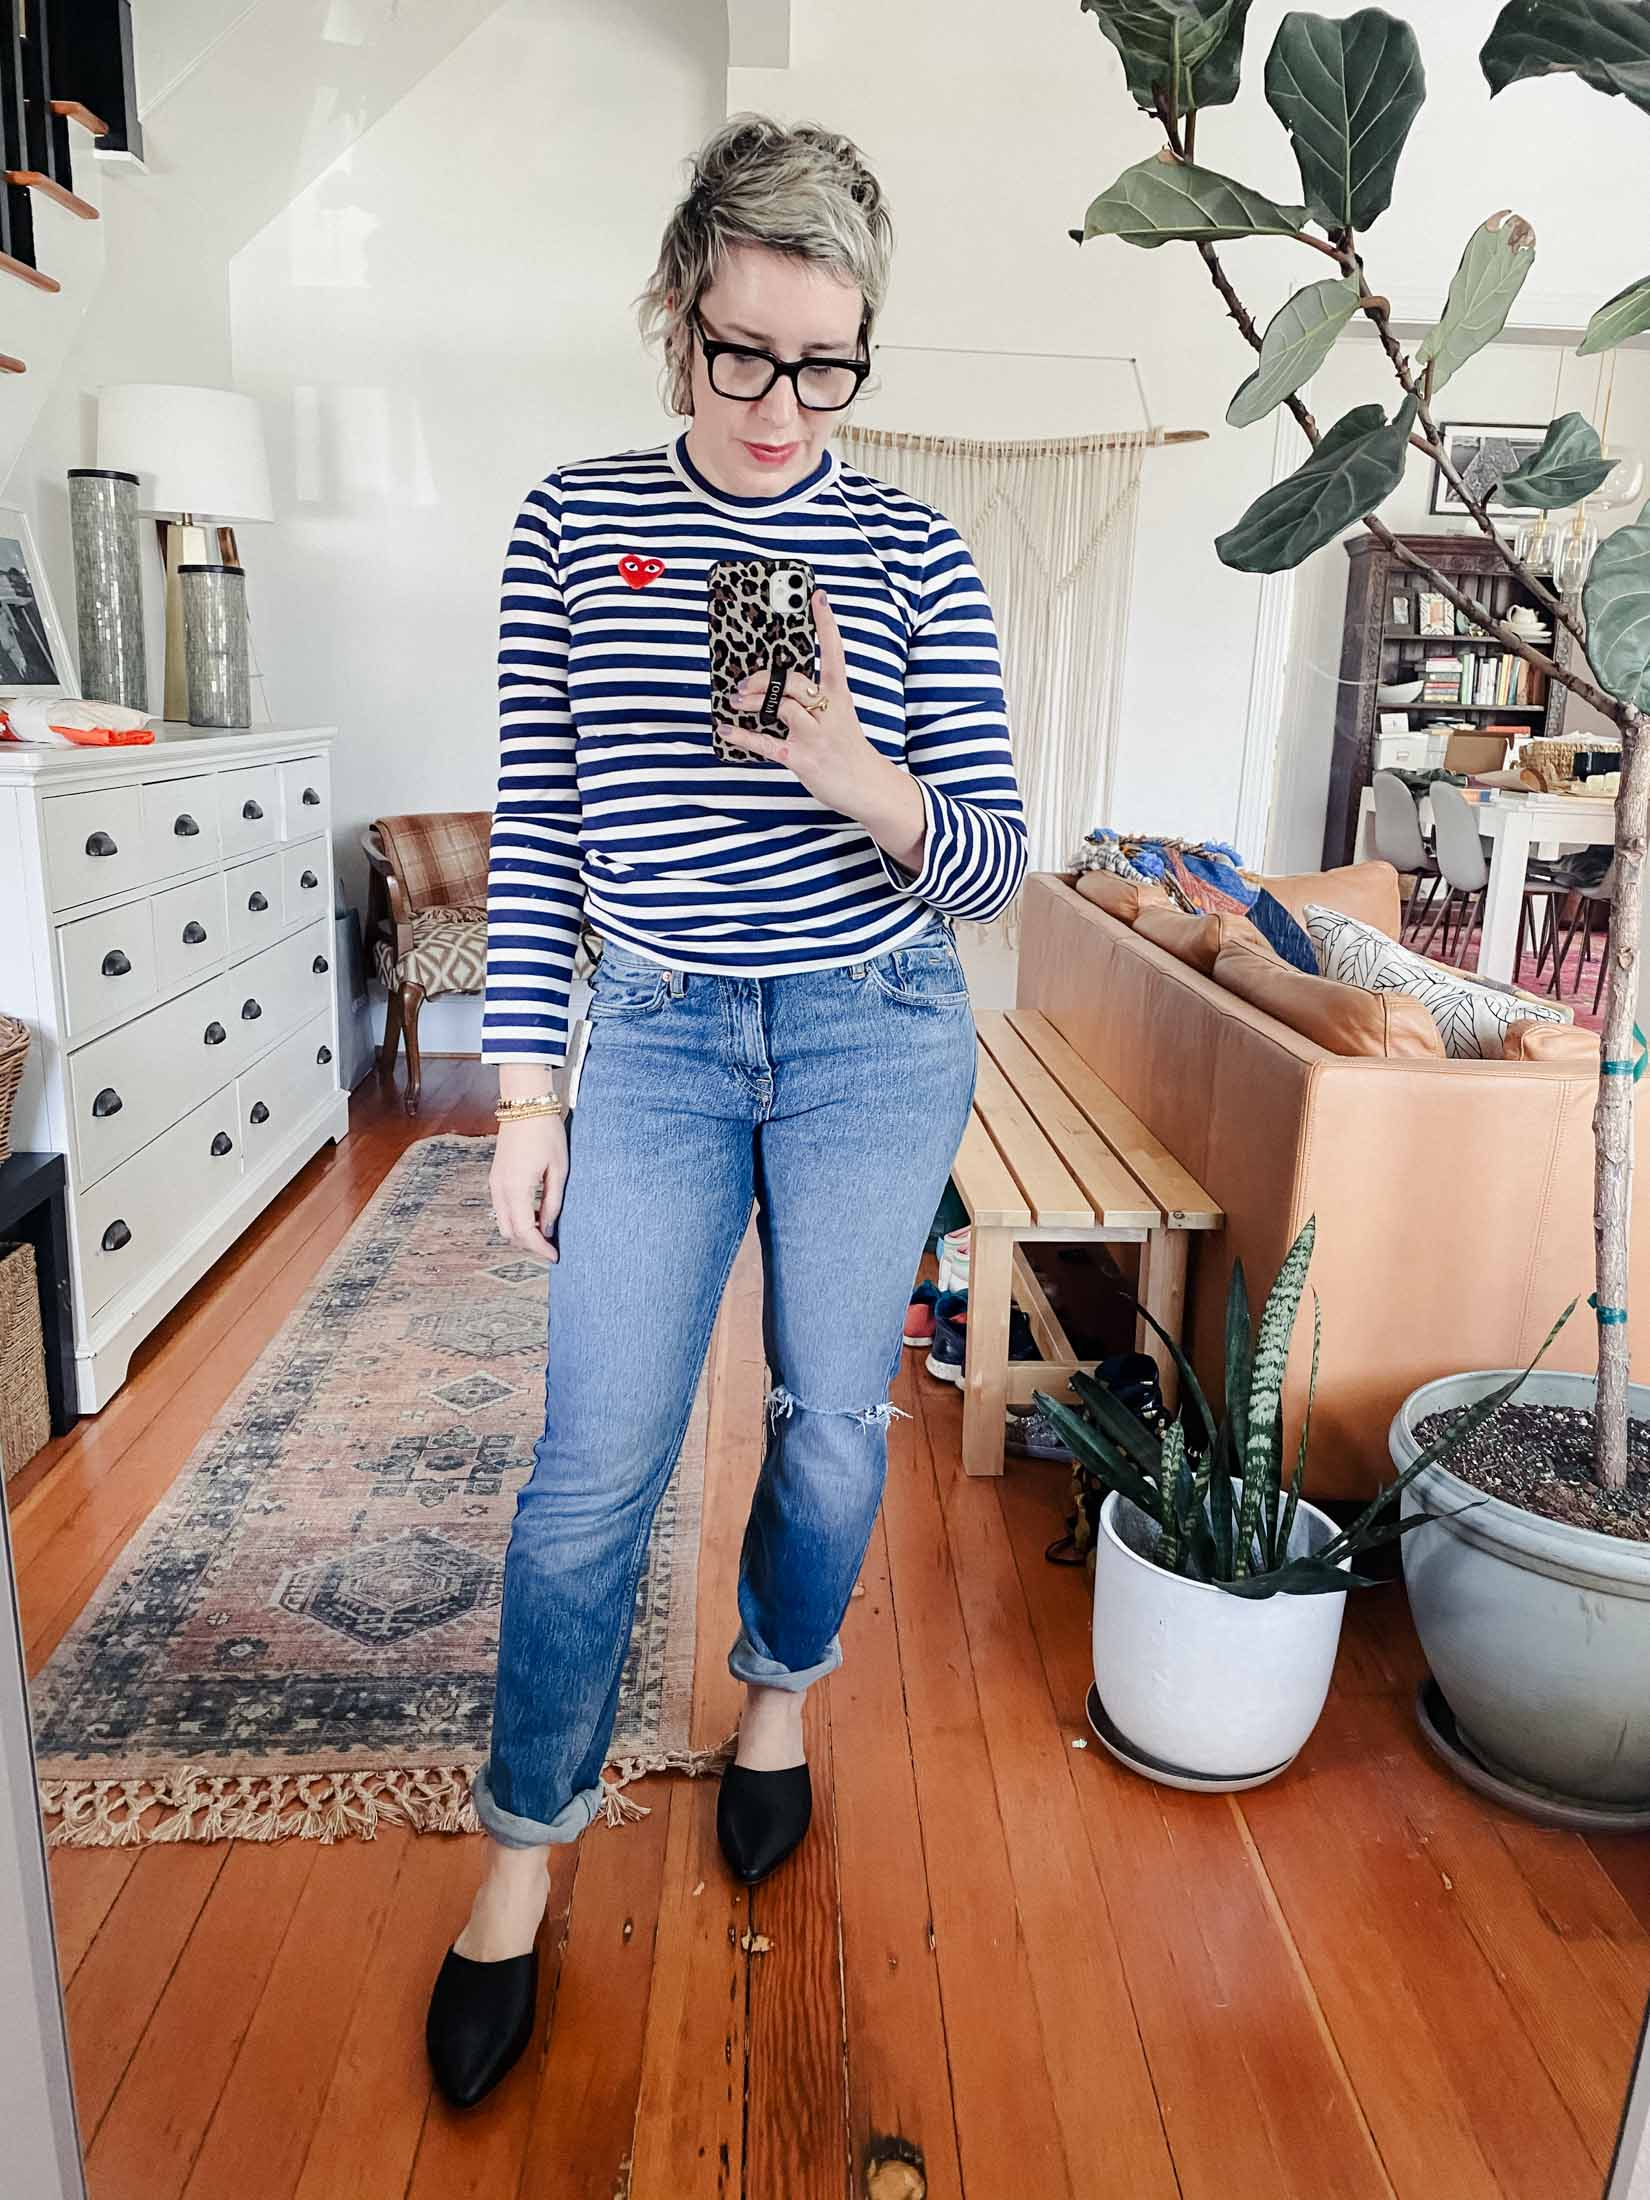 I hadn't ventured into boyfriend jeans territory in a long time. So, when better  than now to do important denim research? 5 pairs, 1 try-on sesh.